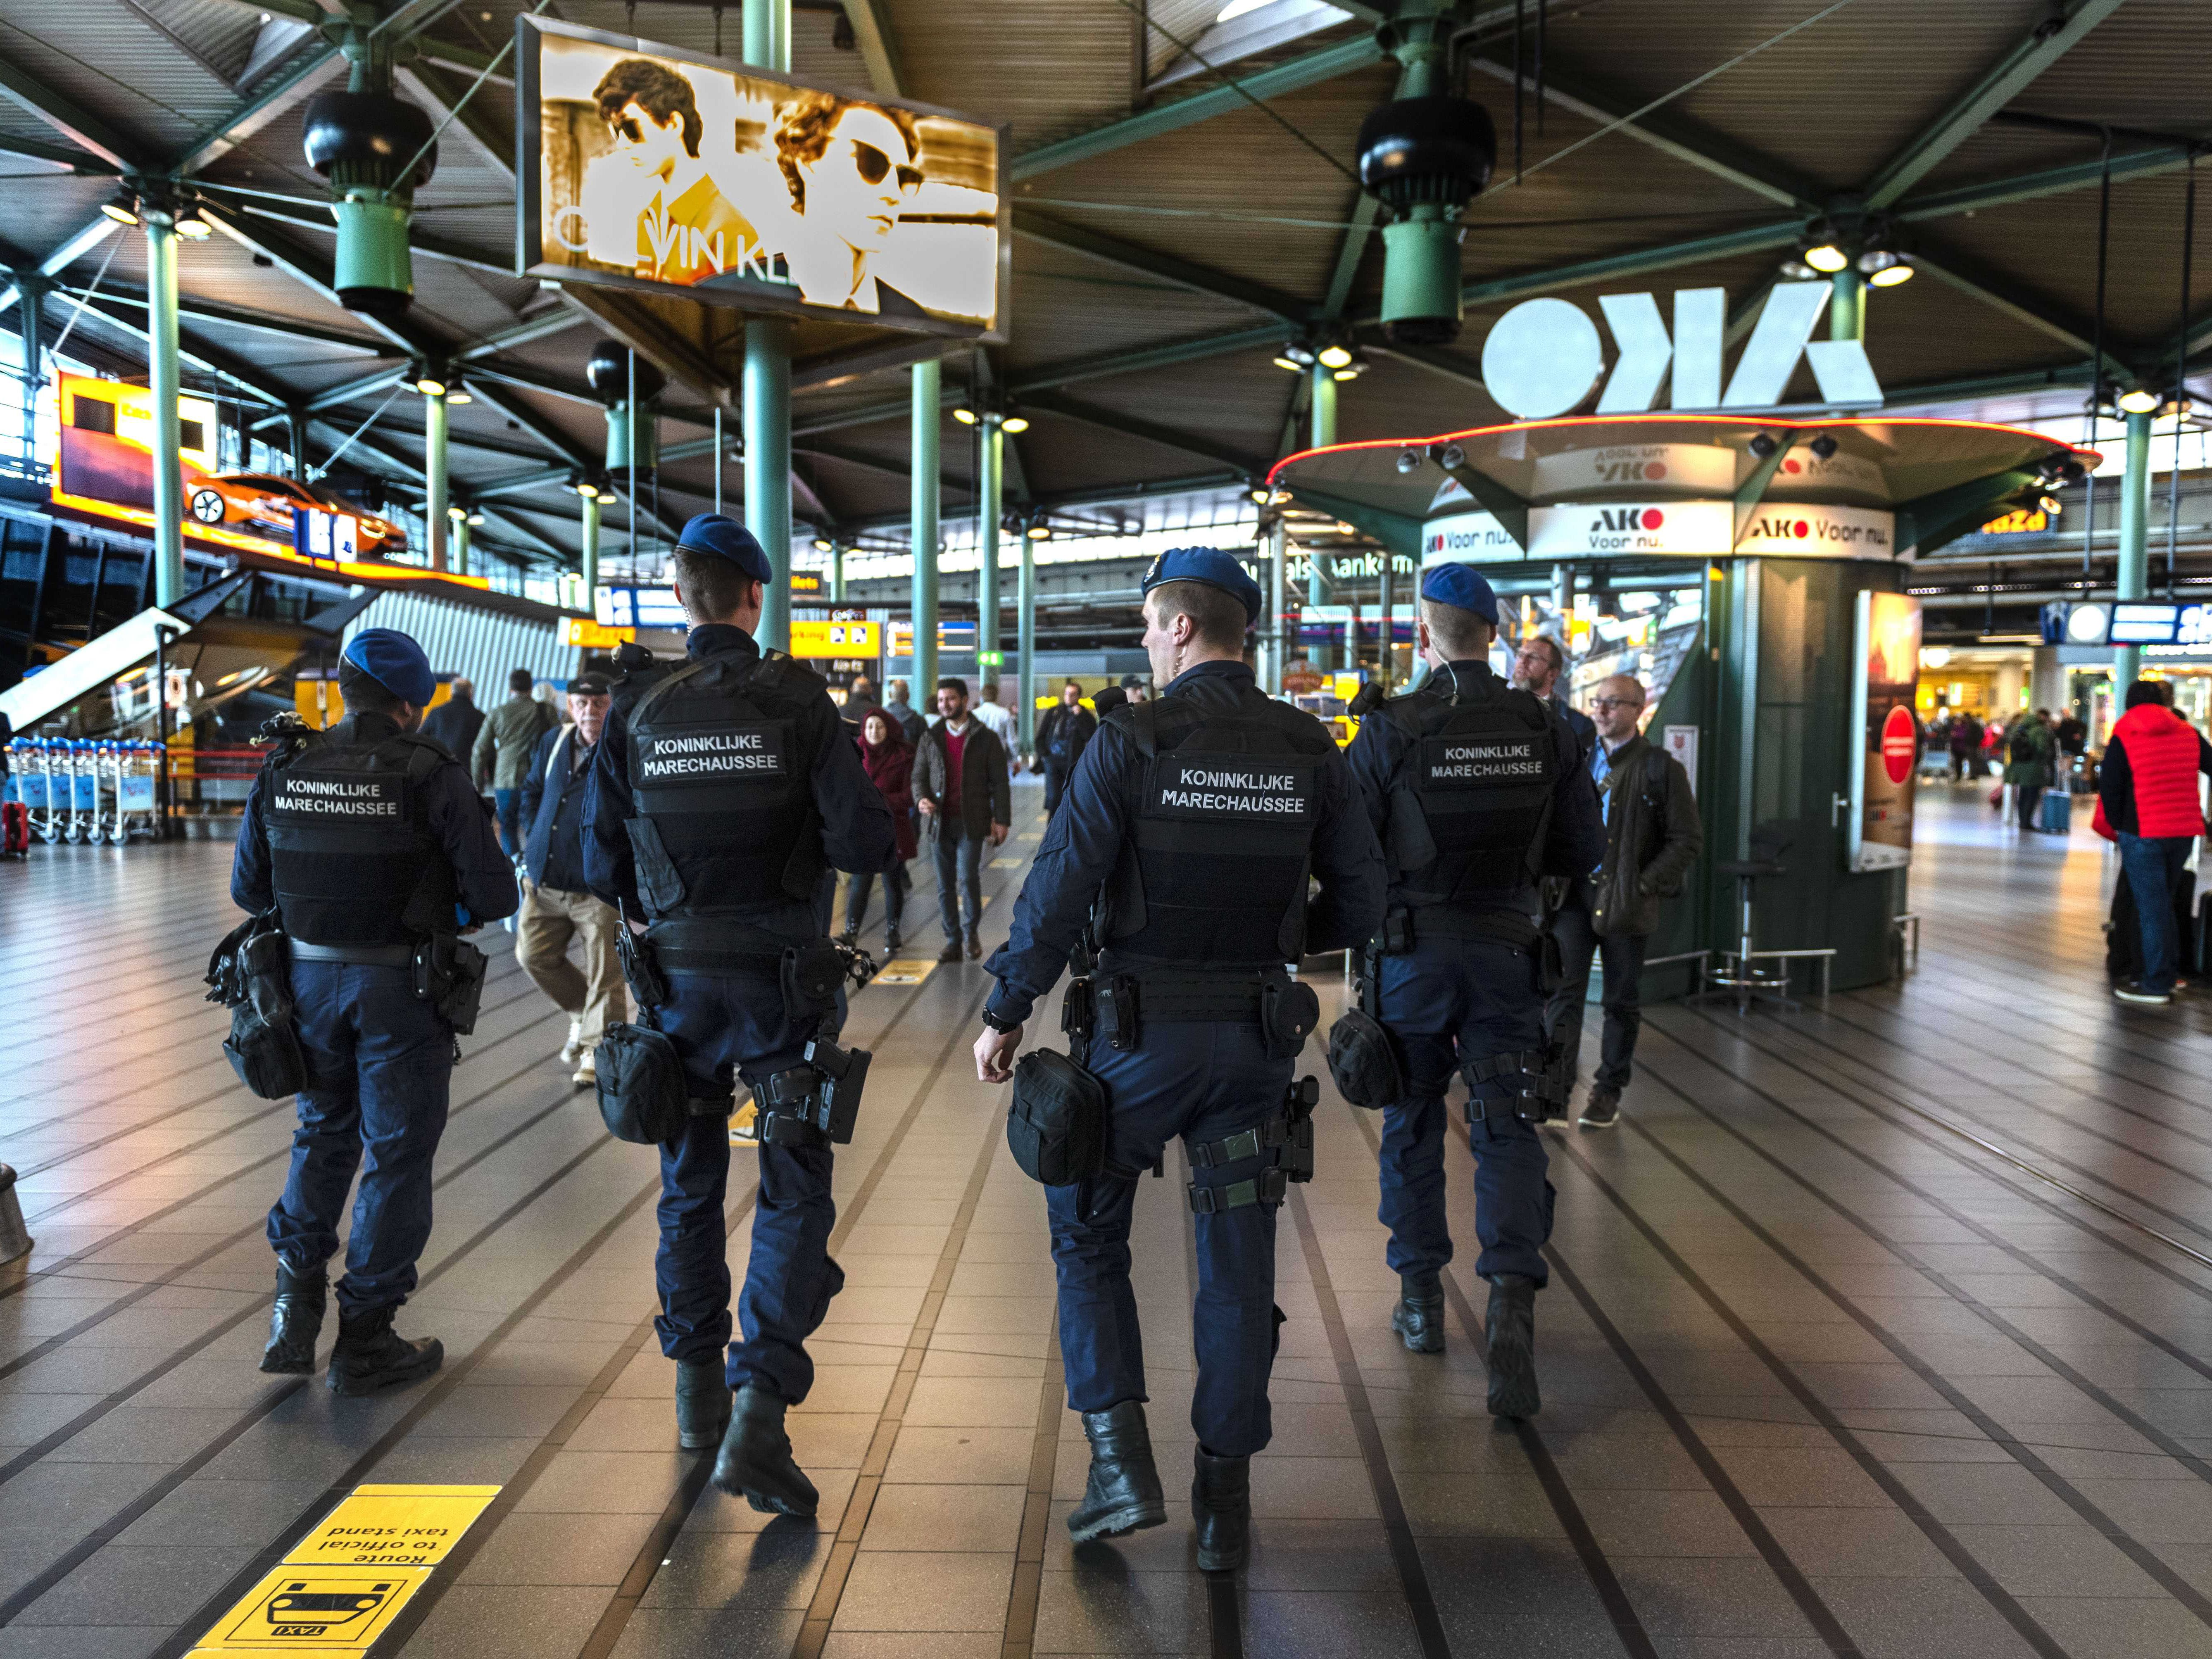 Extra military police units were deployed to Schiphol Airport to heighten security in Schiphol, The Netherlands, March 18, 2019.